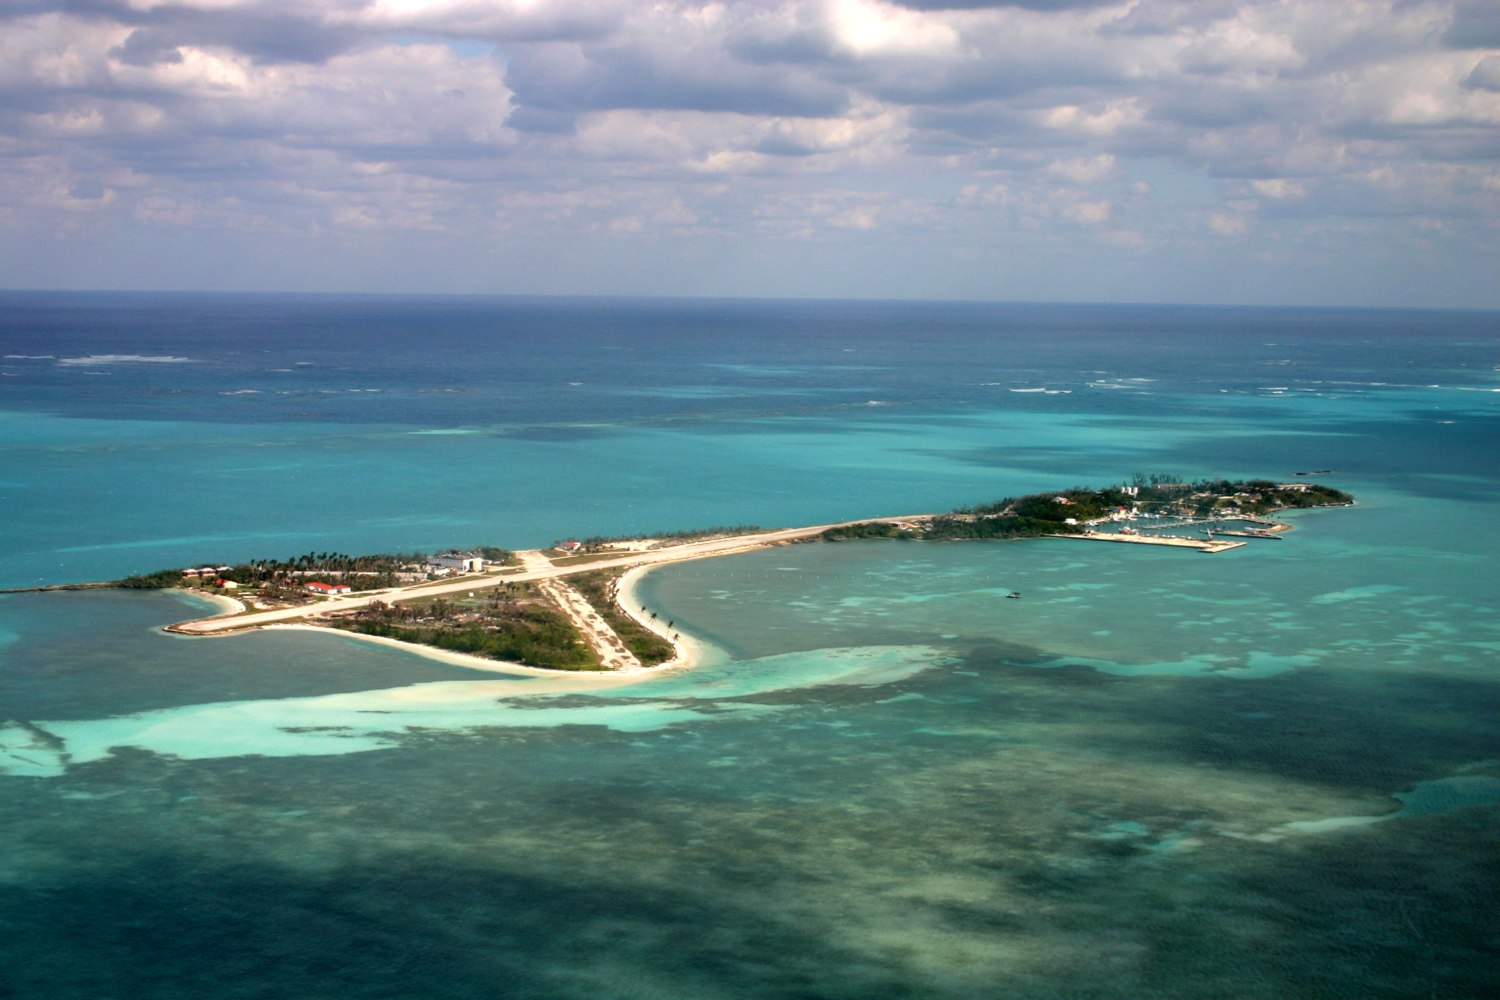 Private islands for sale walker 39 s cay bahamas caribbean for Bahamas private island for sale